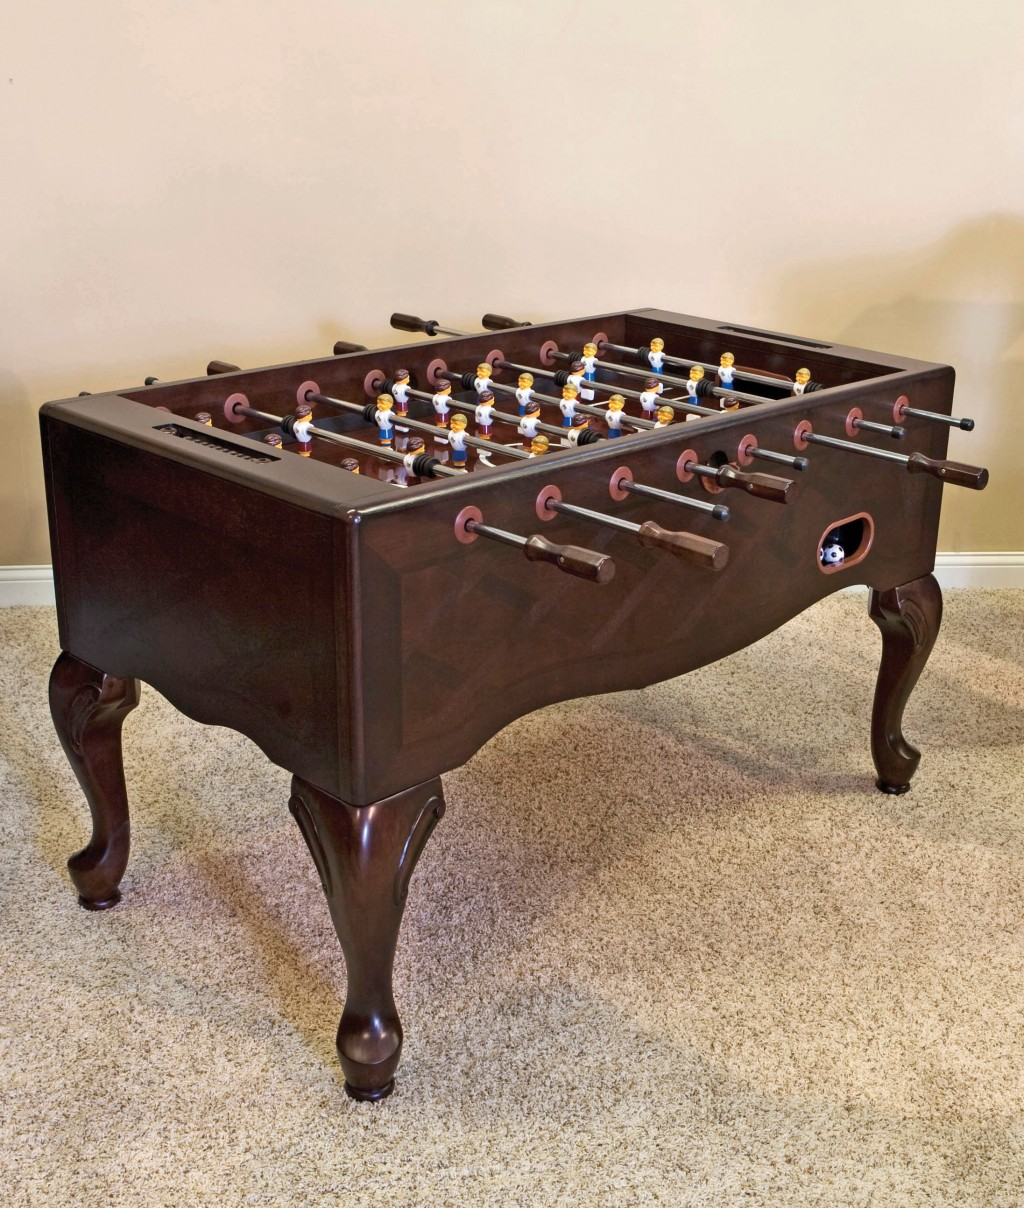 game tables foosball accent table glass side for bedroom lift coffee square trestle furniture covers metal carpet transition strip kitchen bean bag filler mission style tiffany